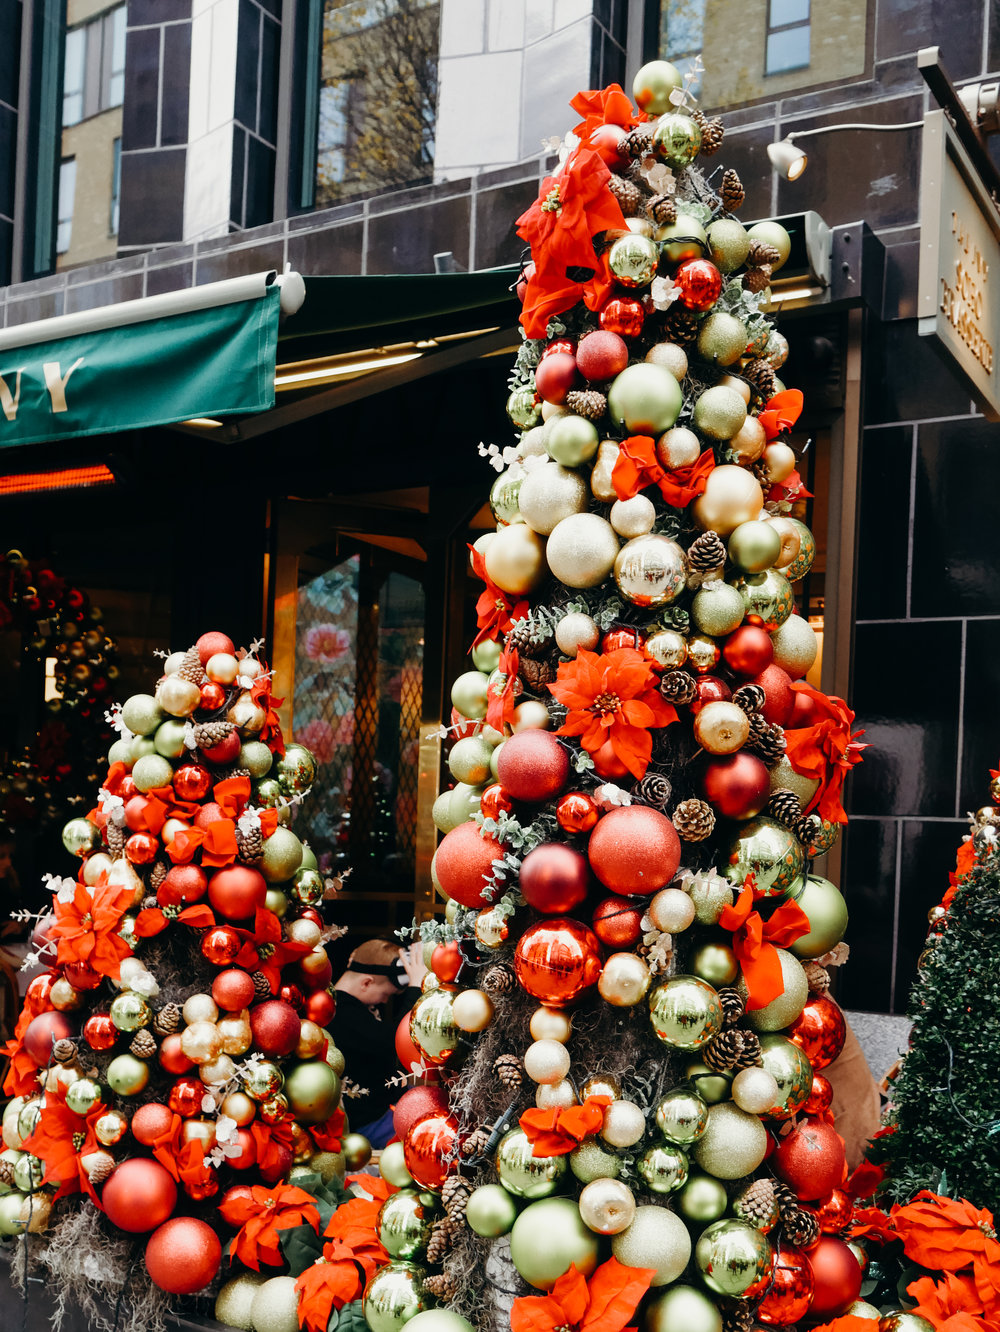 6 Things to Do in London at Christmastime - The Ivy Soho Brasserie